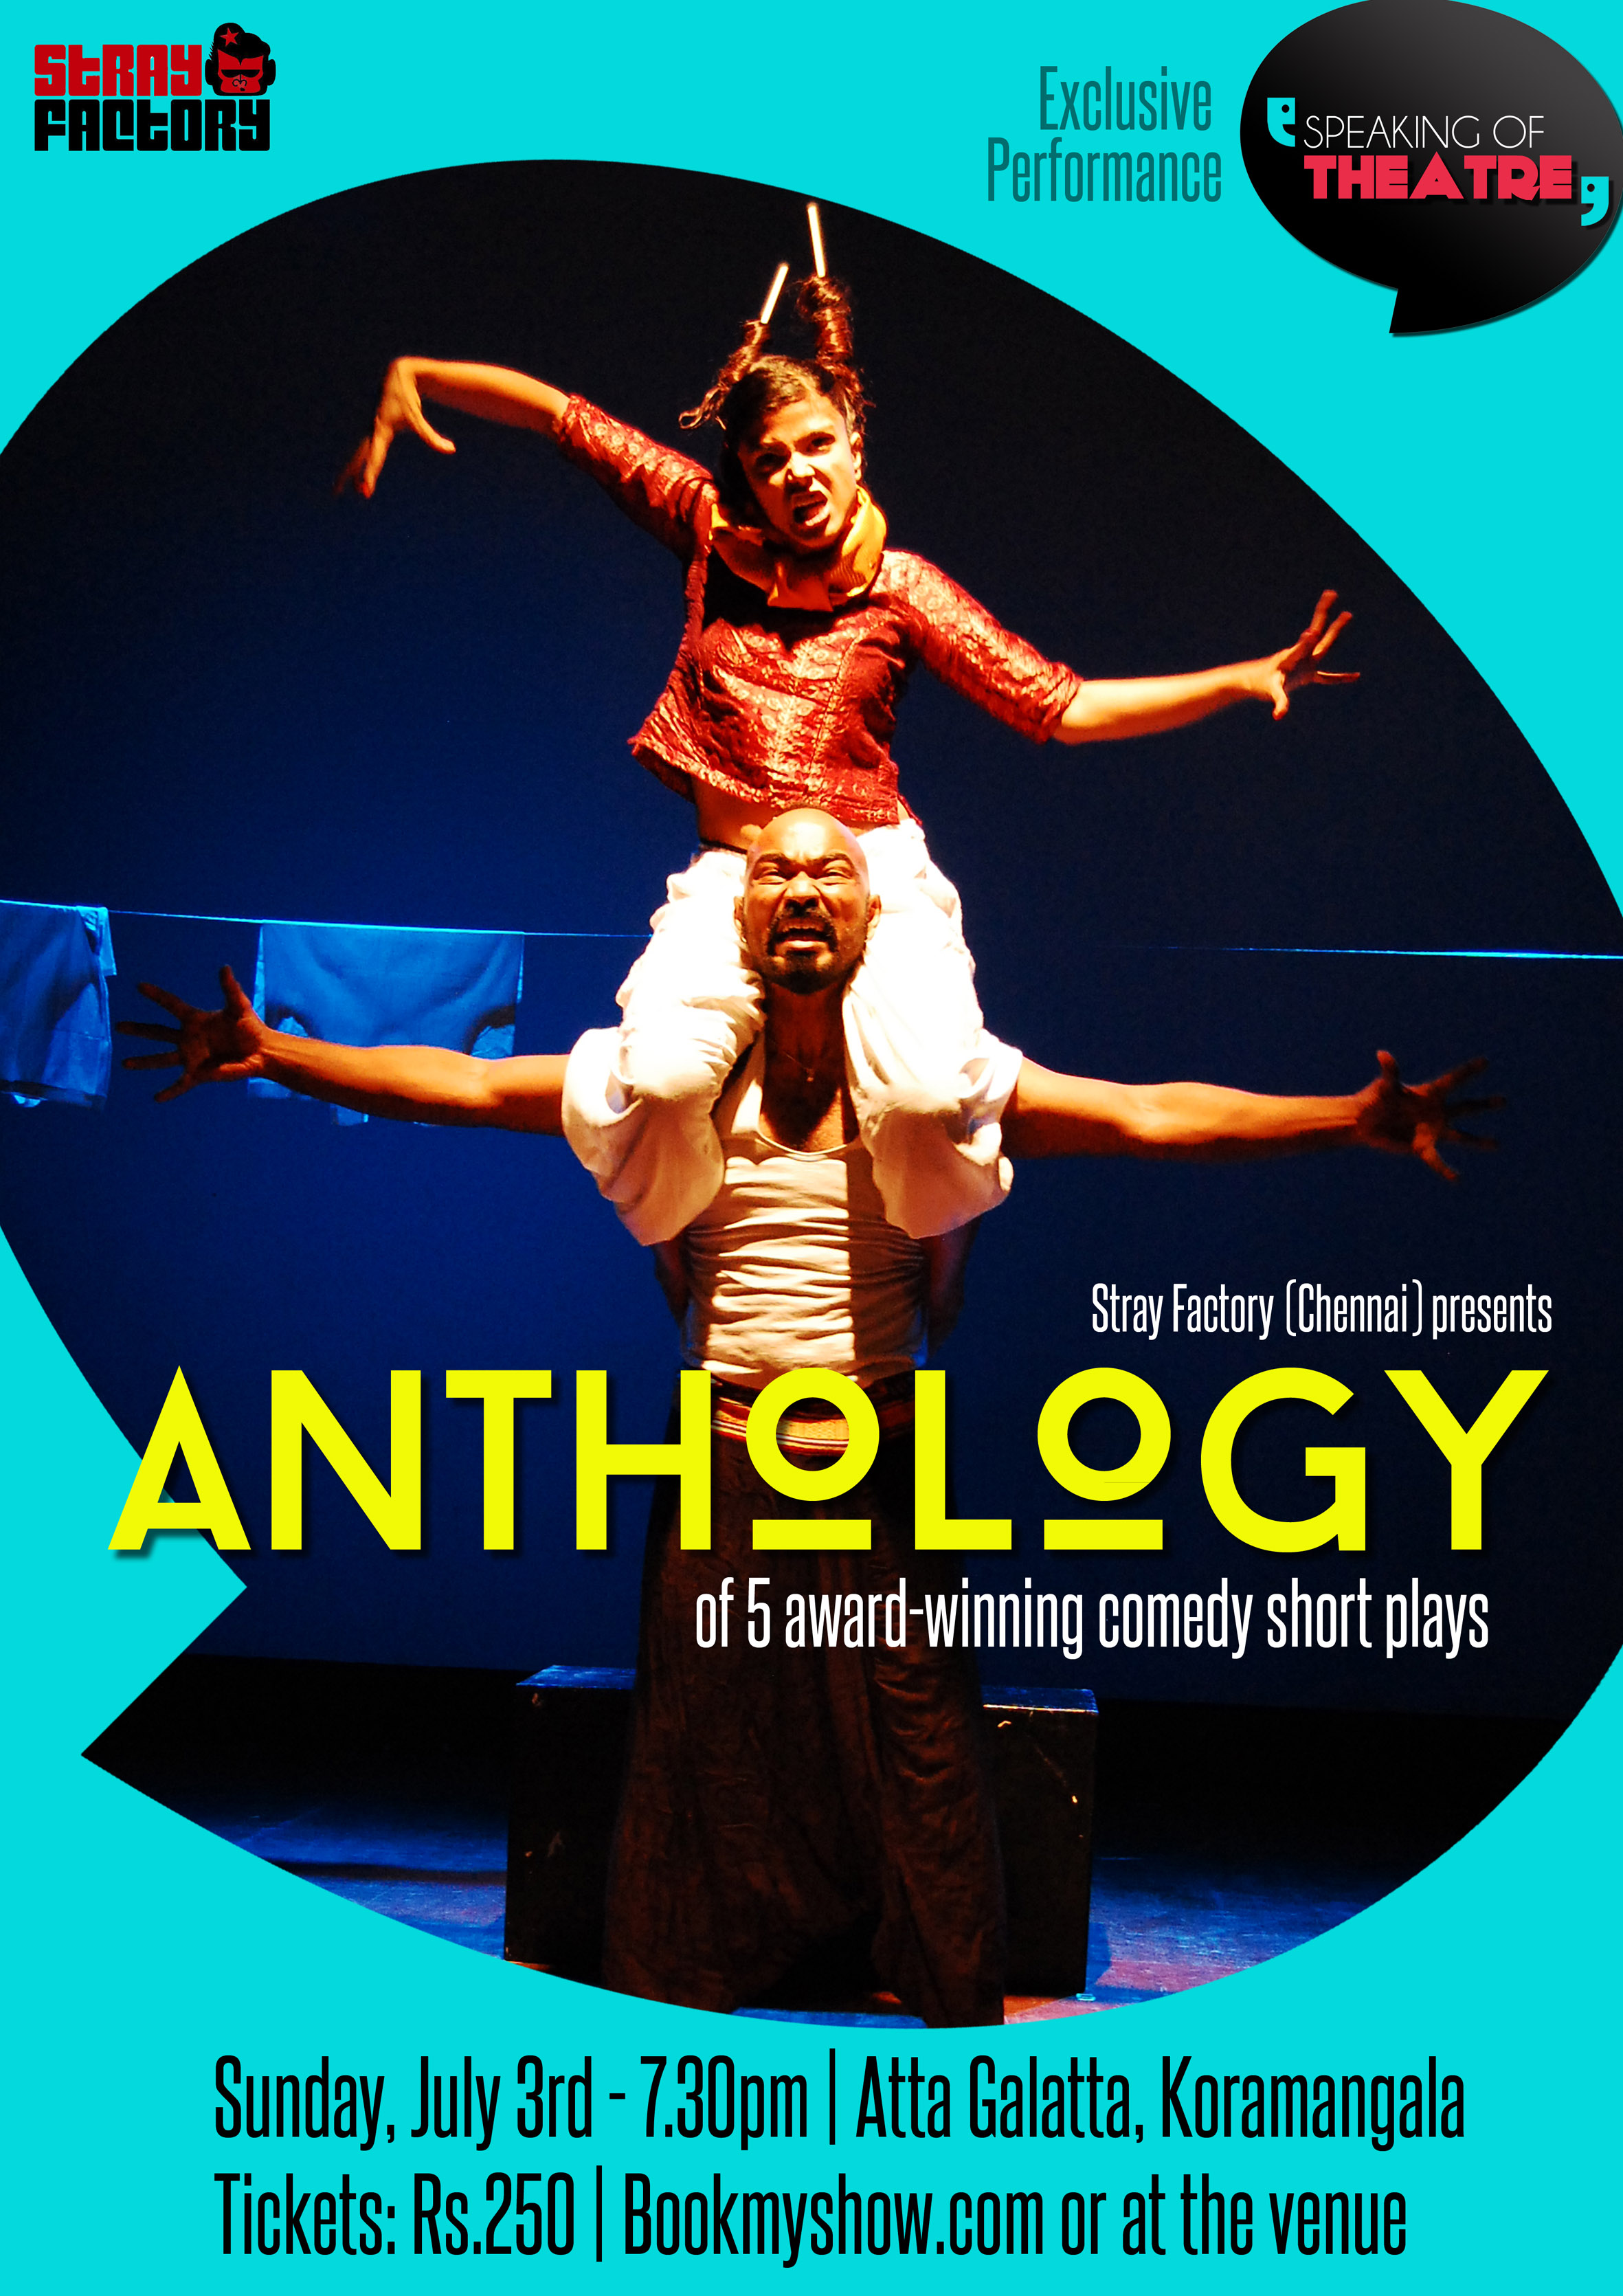 Anthology by Stray Factory